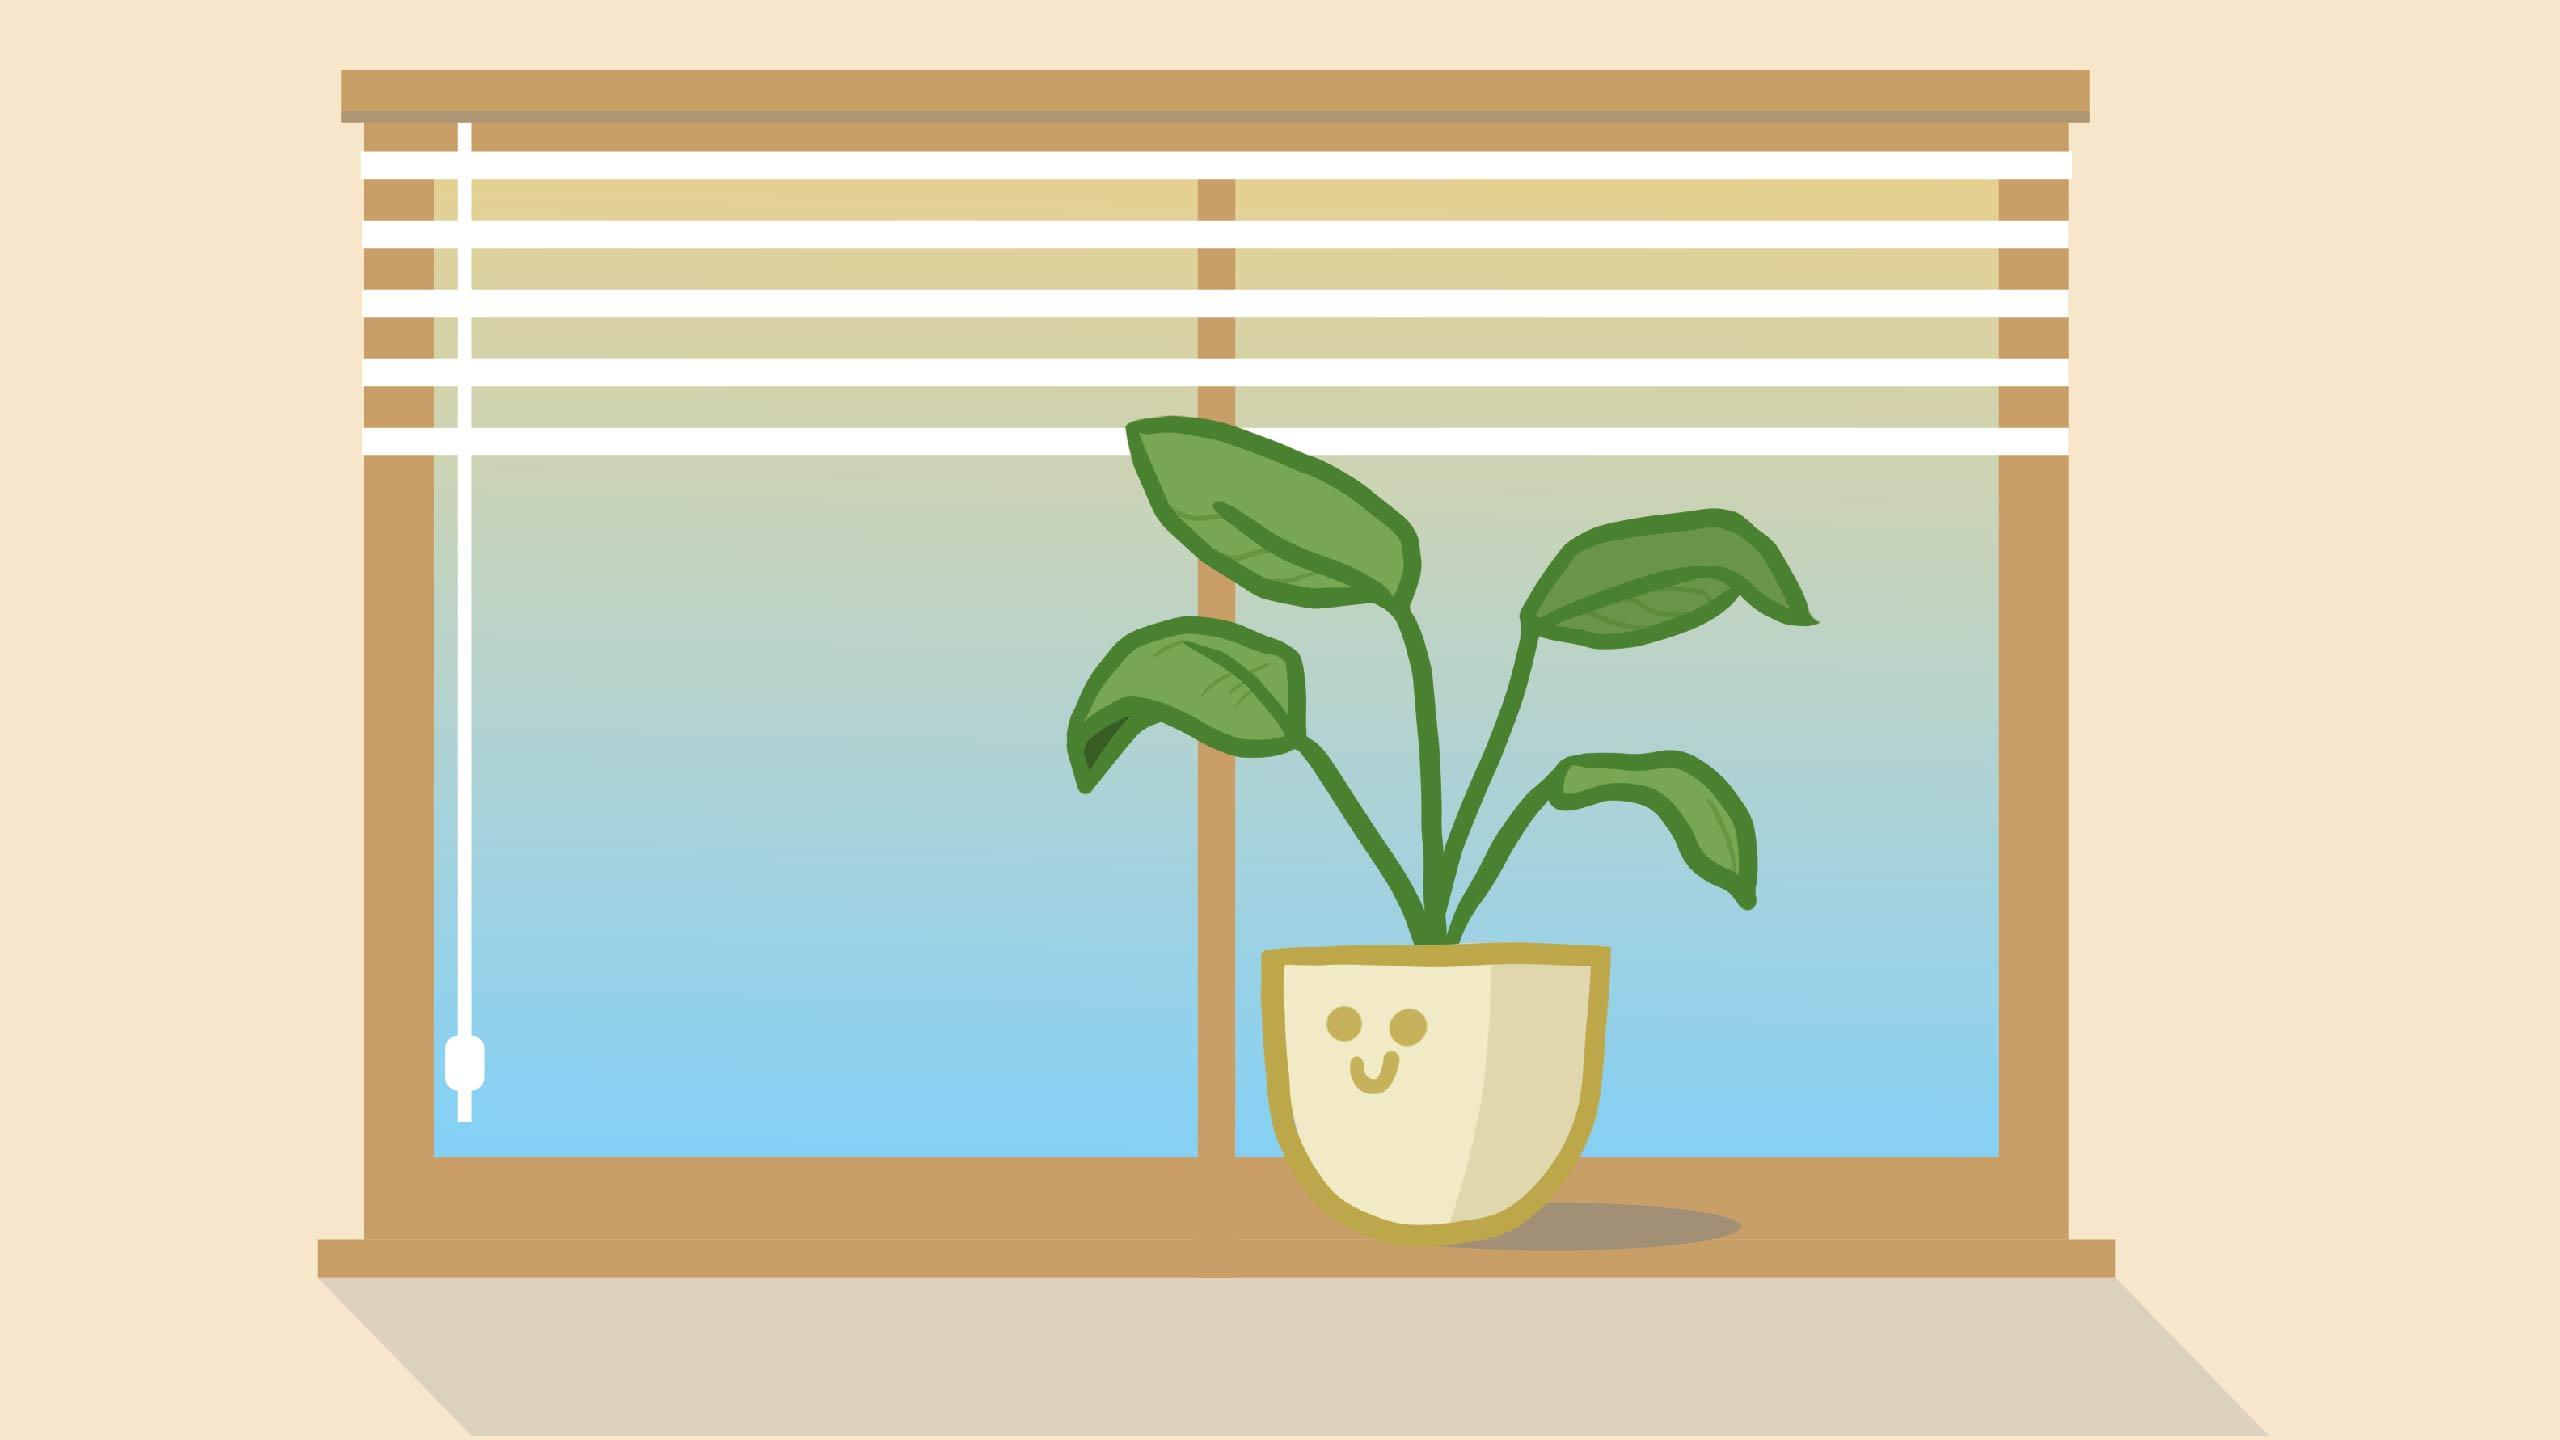 A house plant with a smiley face sitting on a window sill.